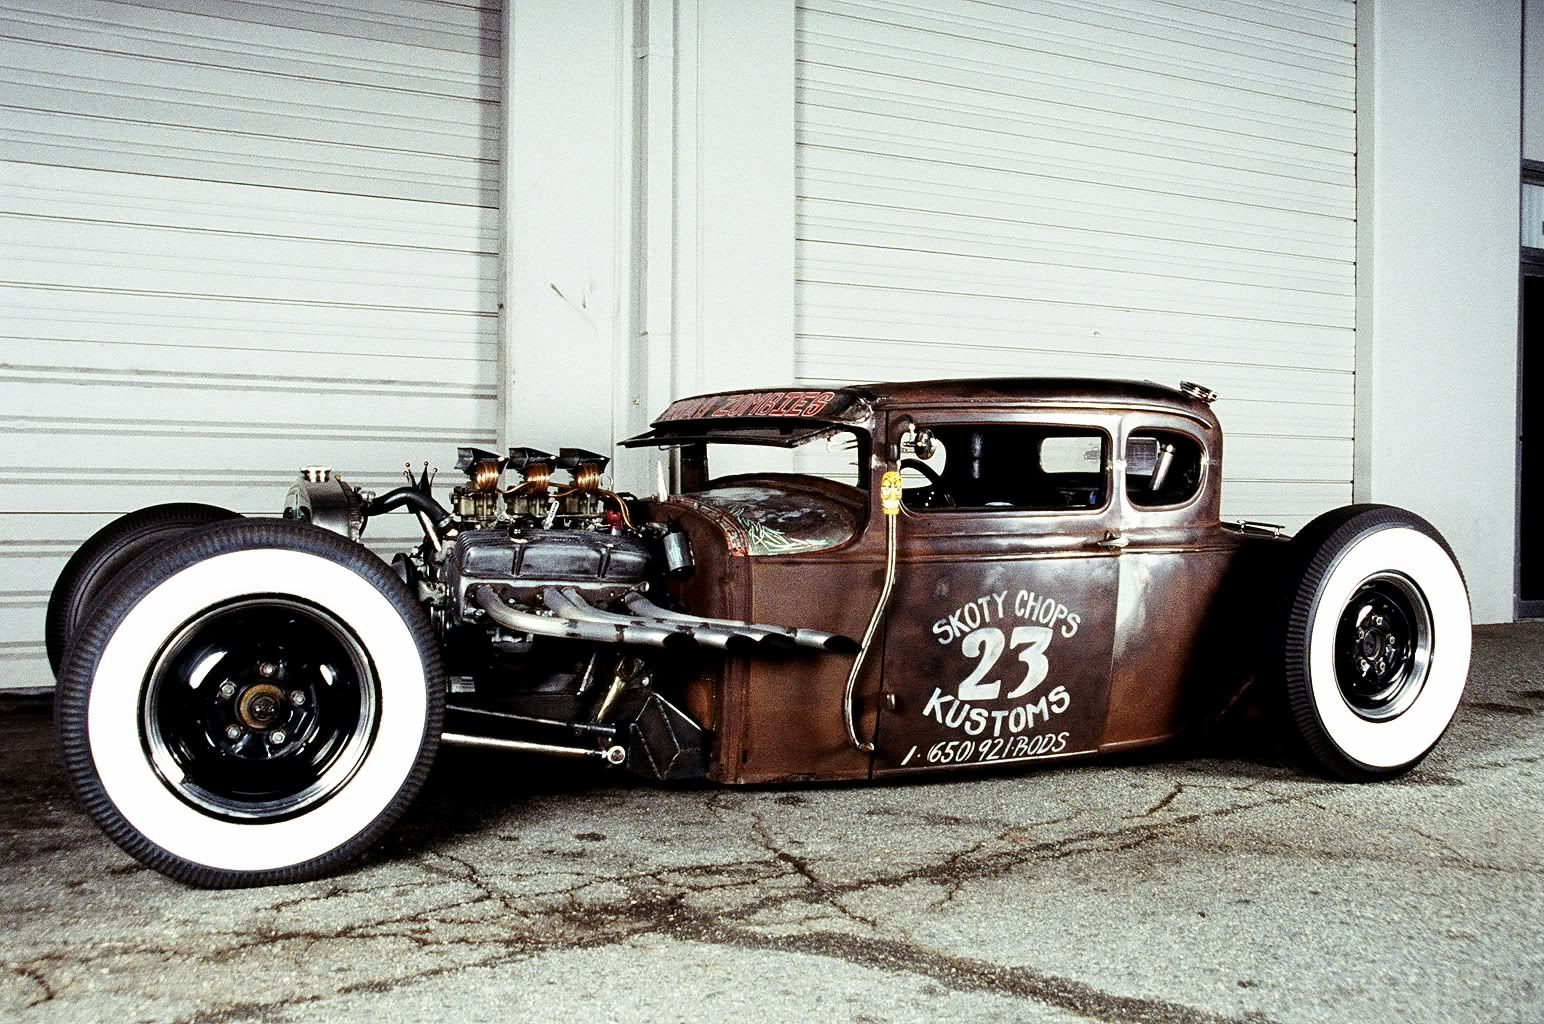 Scotty Chops 39 Rat Rod With A Suicide Shifter On The